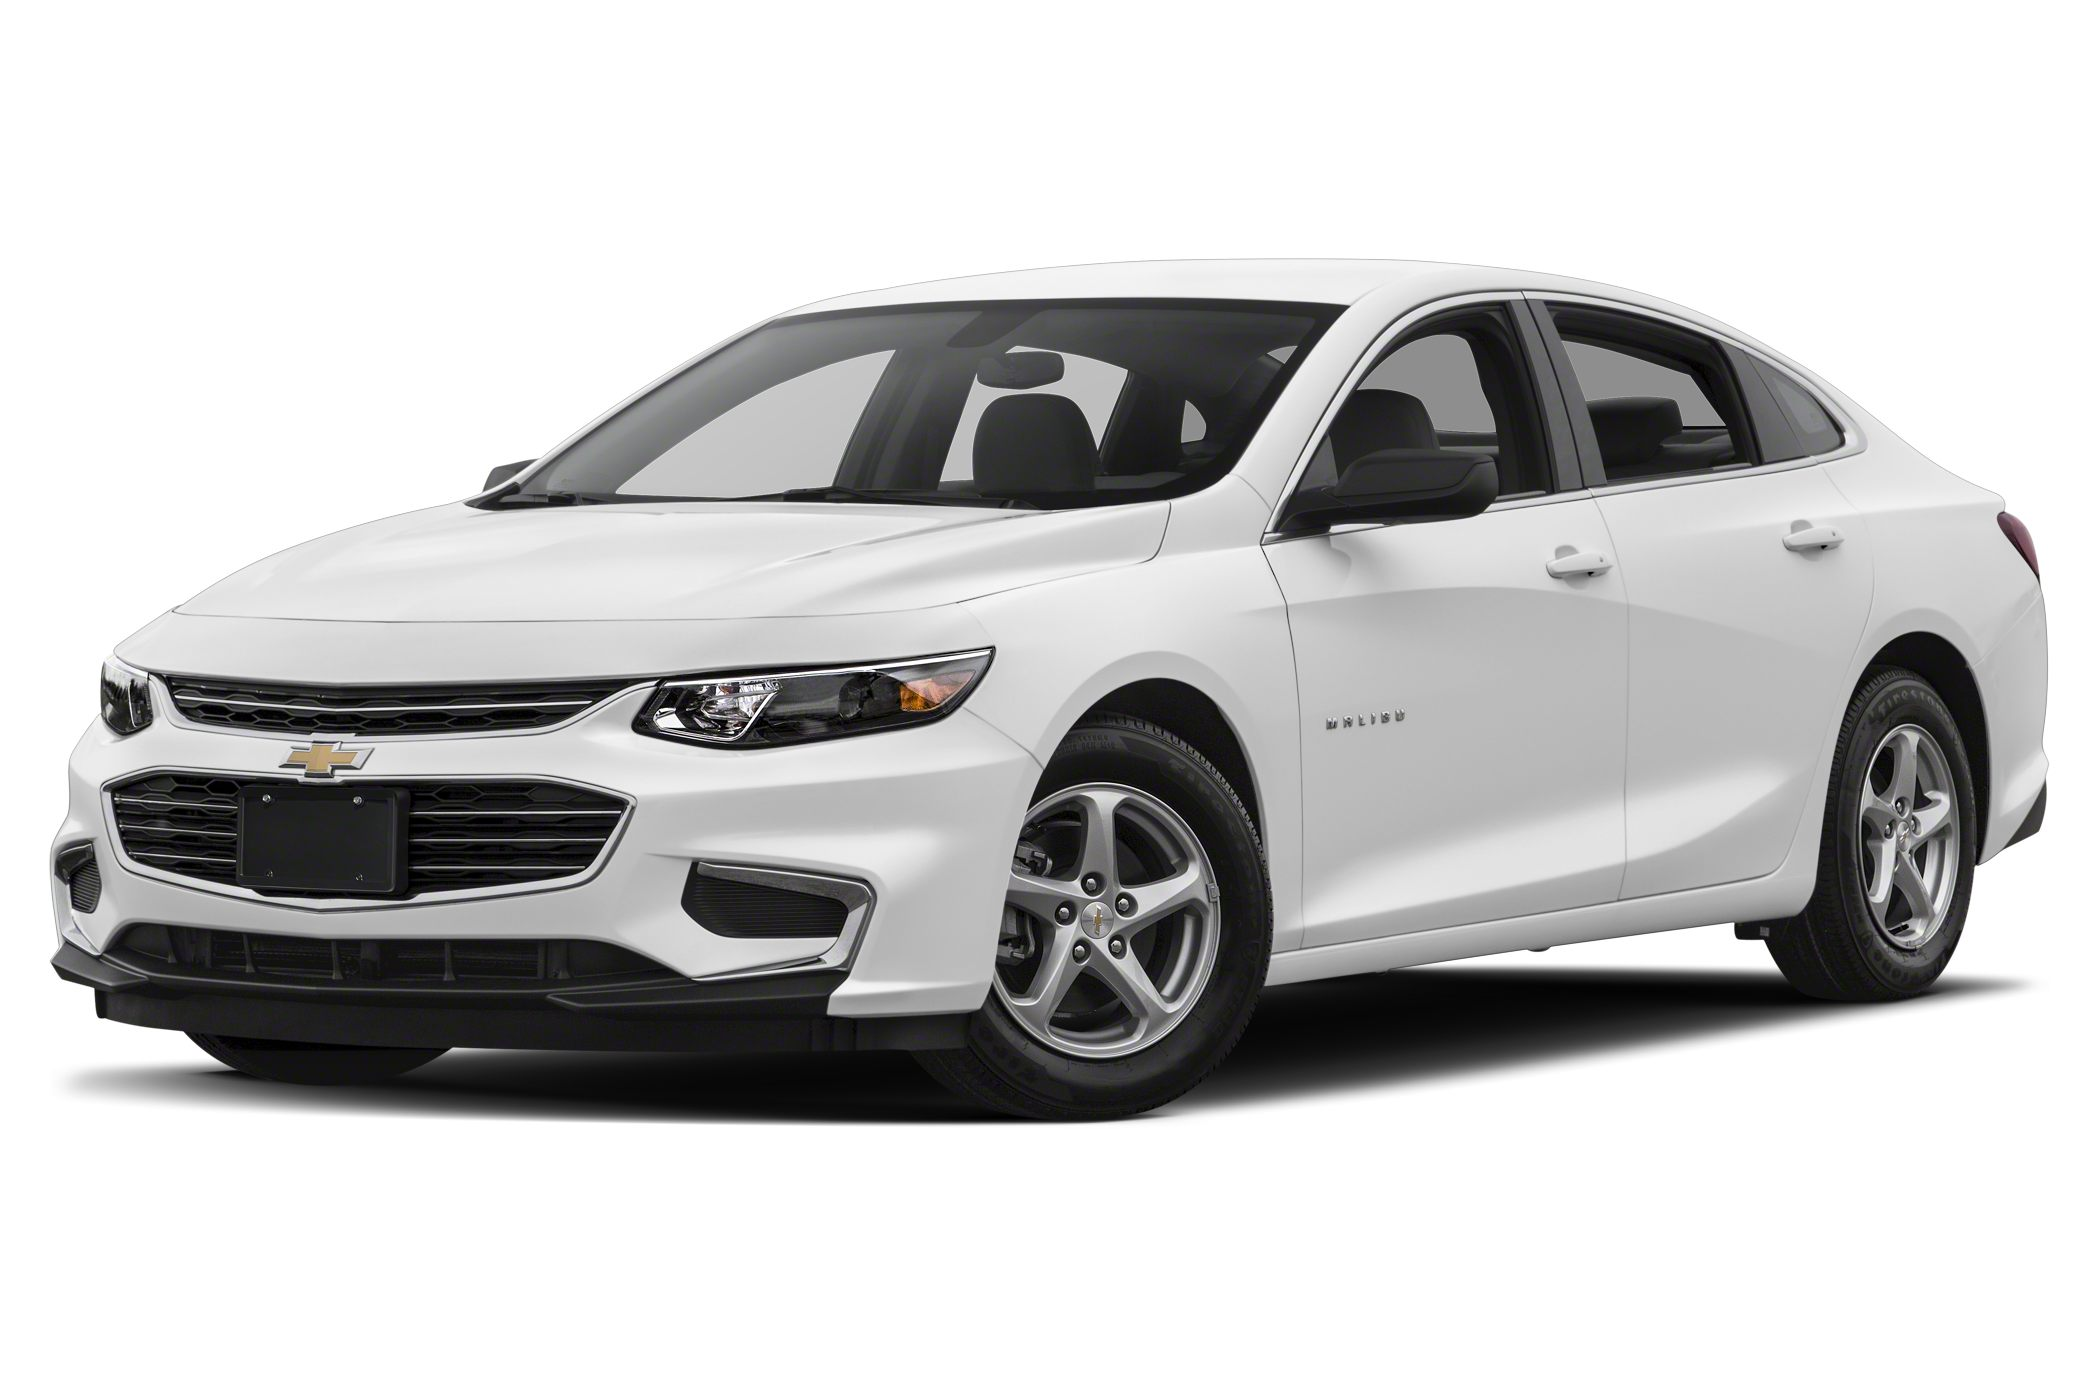 chevrolet malibu pricing reviews and new model information autoblog. Black Bedroom Furniture Sets. Home Design Ideas